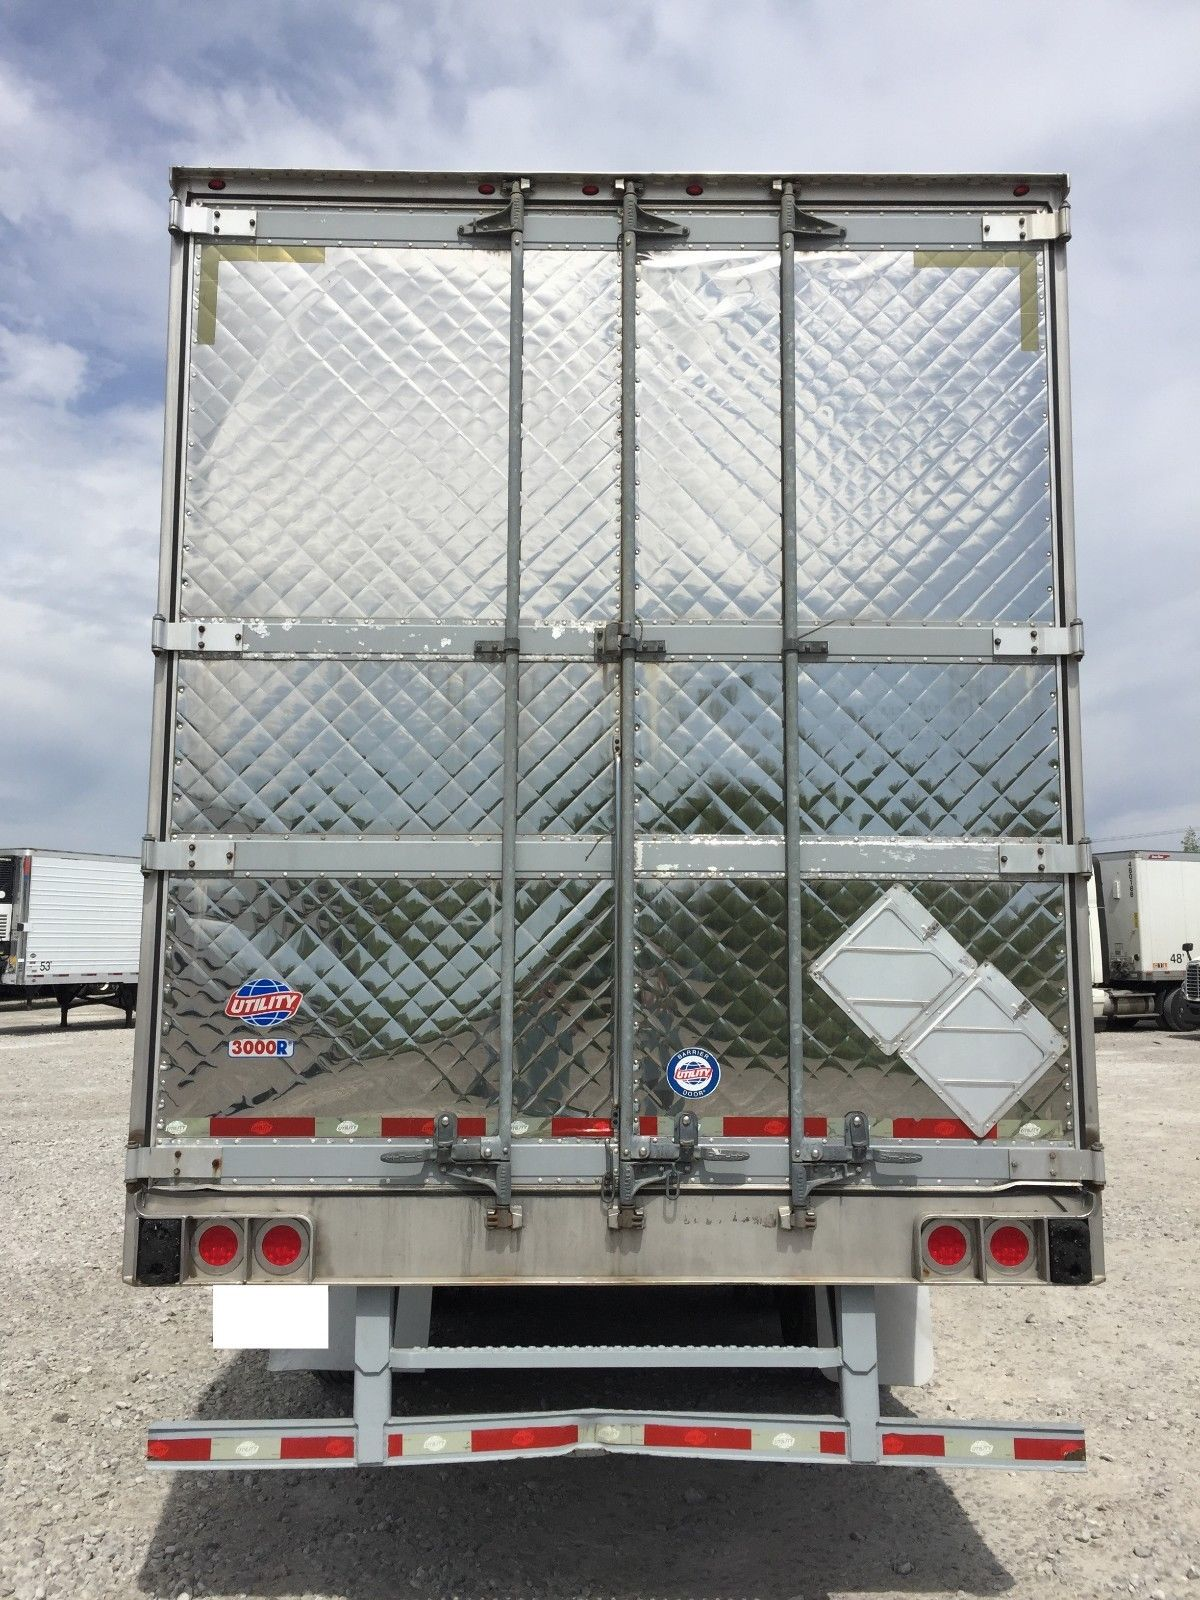 REAR STAINLESS DOORS REFRIGERATED REEFER TRAILERS 2009 WABASH 2007 2008 UTILITY